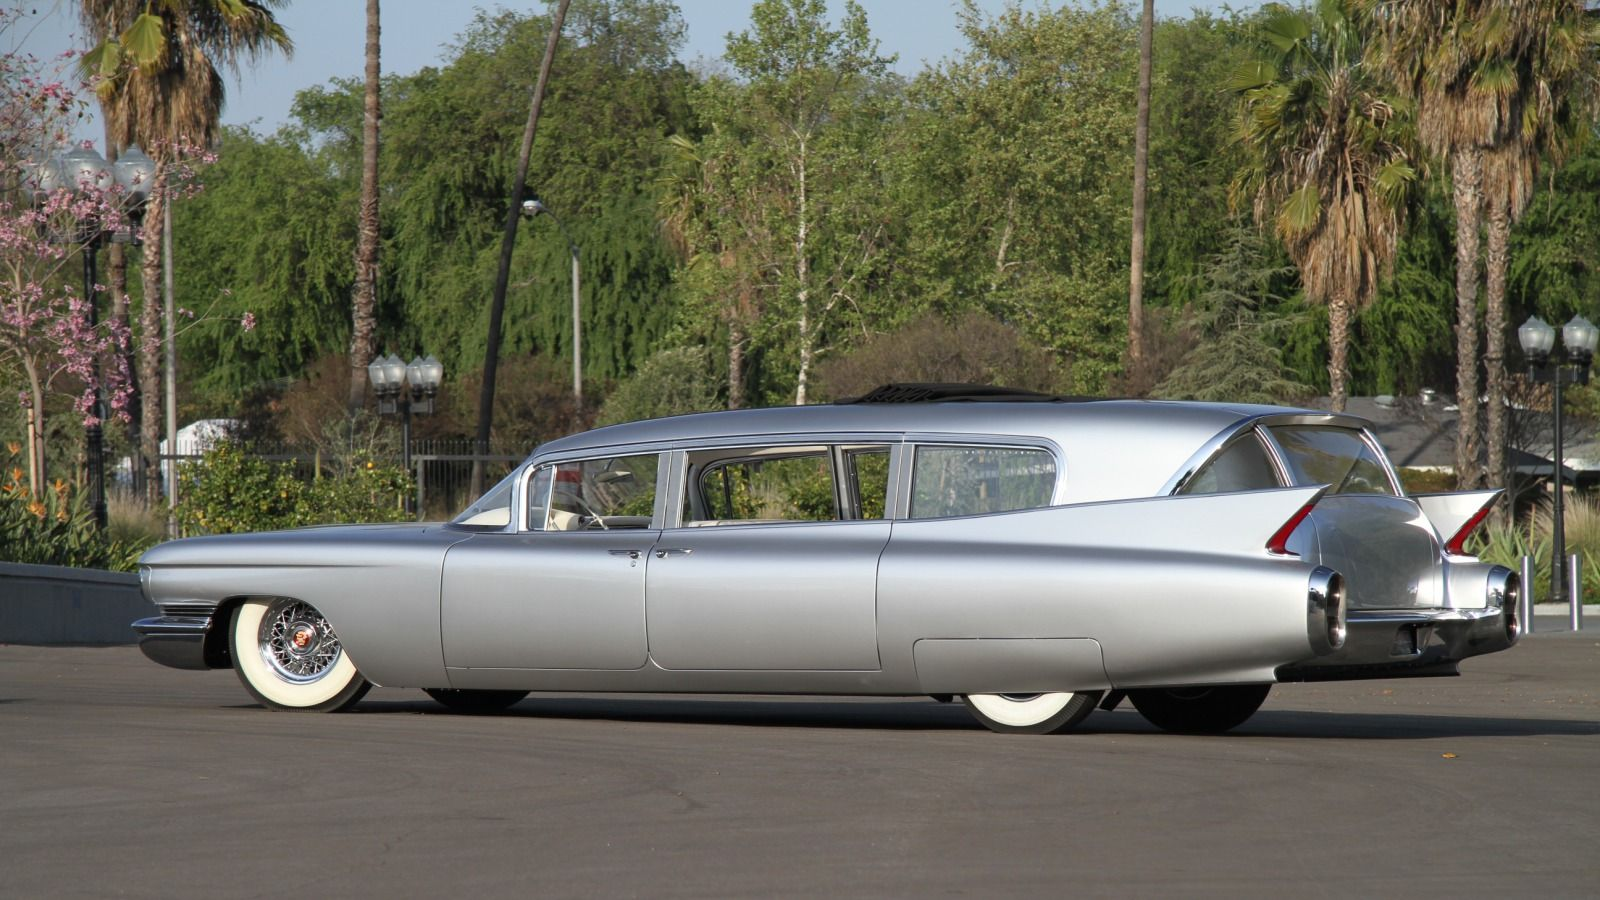 Cadillac miller meteor limo style endloader the ghostbusters ecto 1 was a 1959 cadillac miller meteor ambulance vehicles pinterest 1959 cadillac